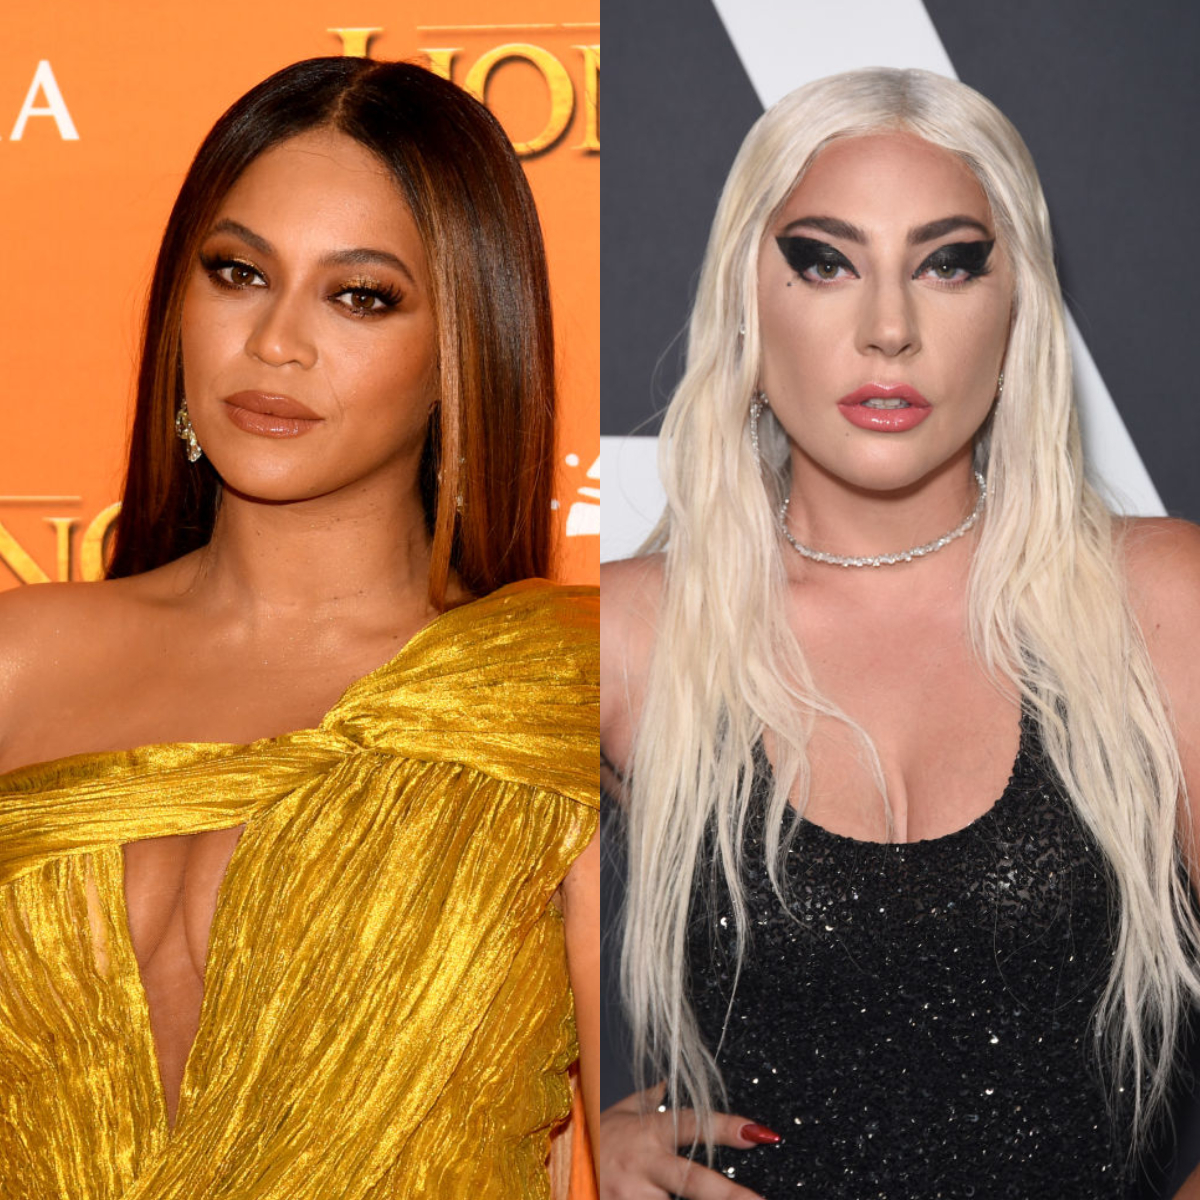 Super Bowl 2020: Lady Gaga, Beyonce, Cardi B likely to attend; Check out the star studded guest list